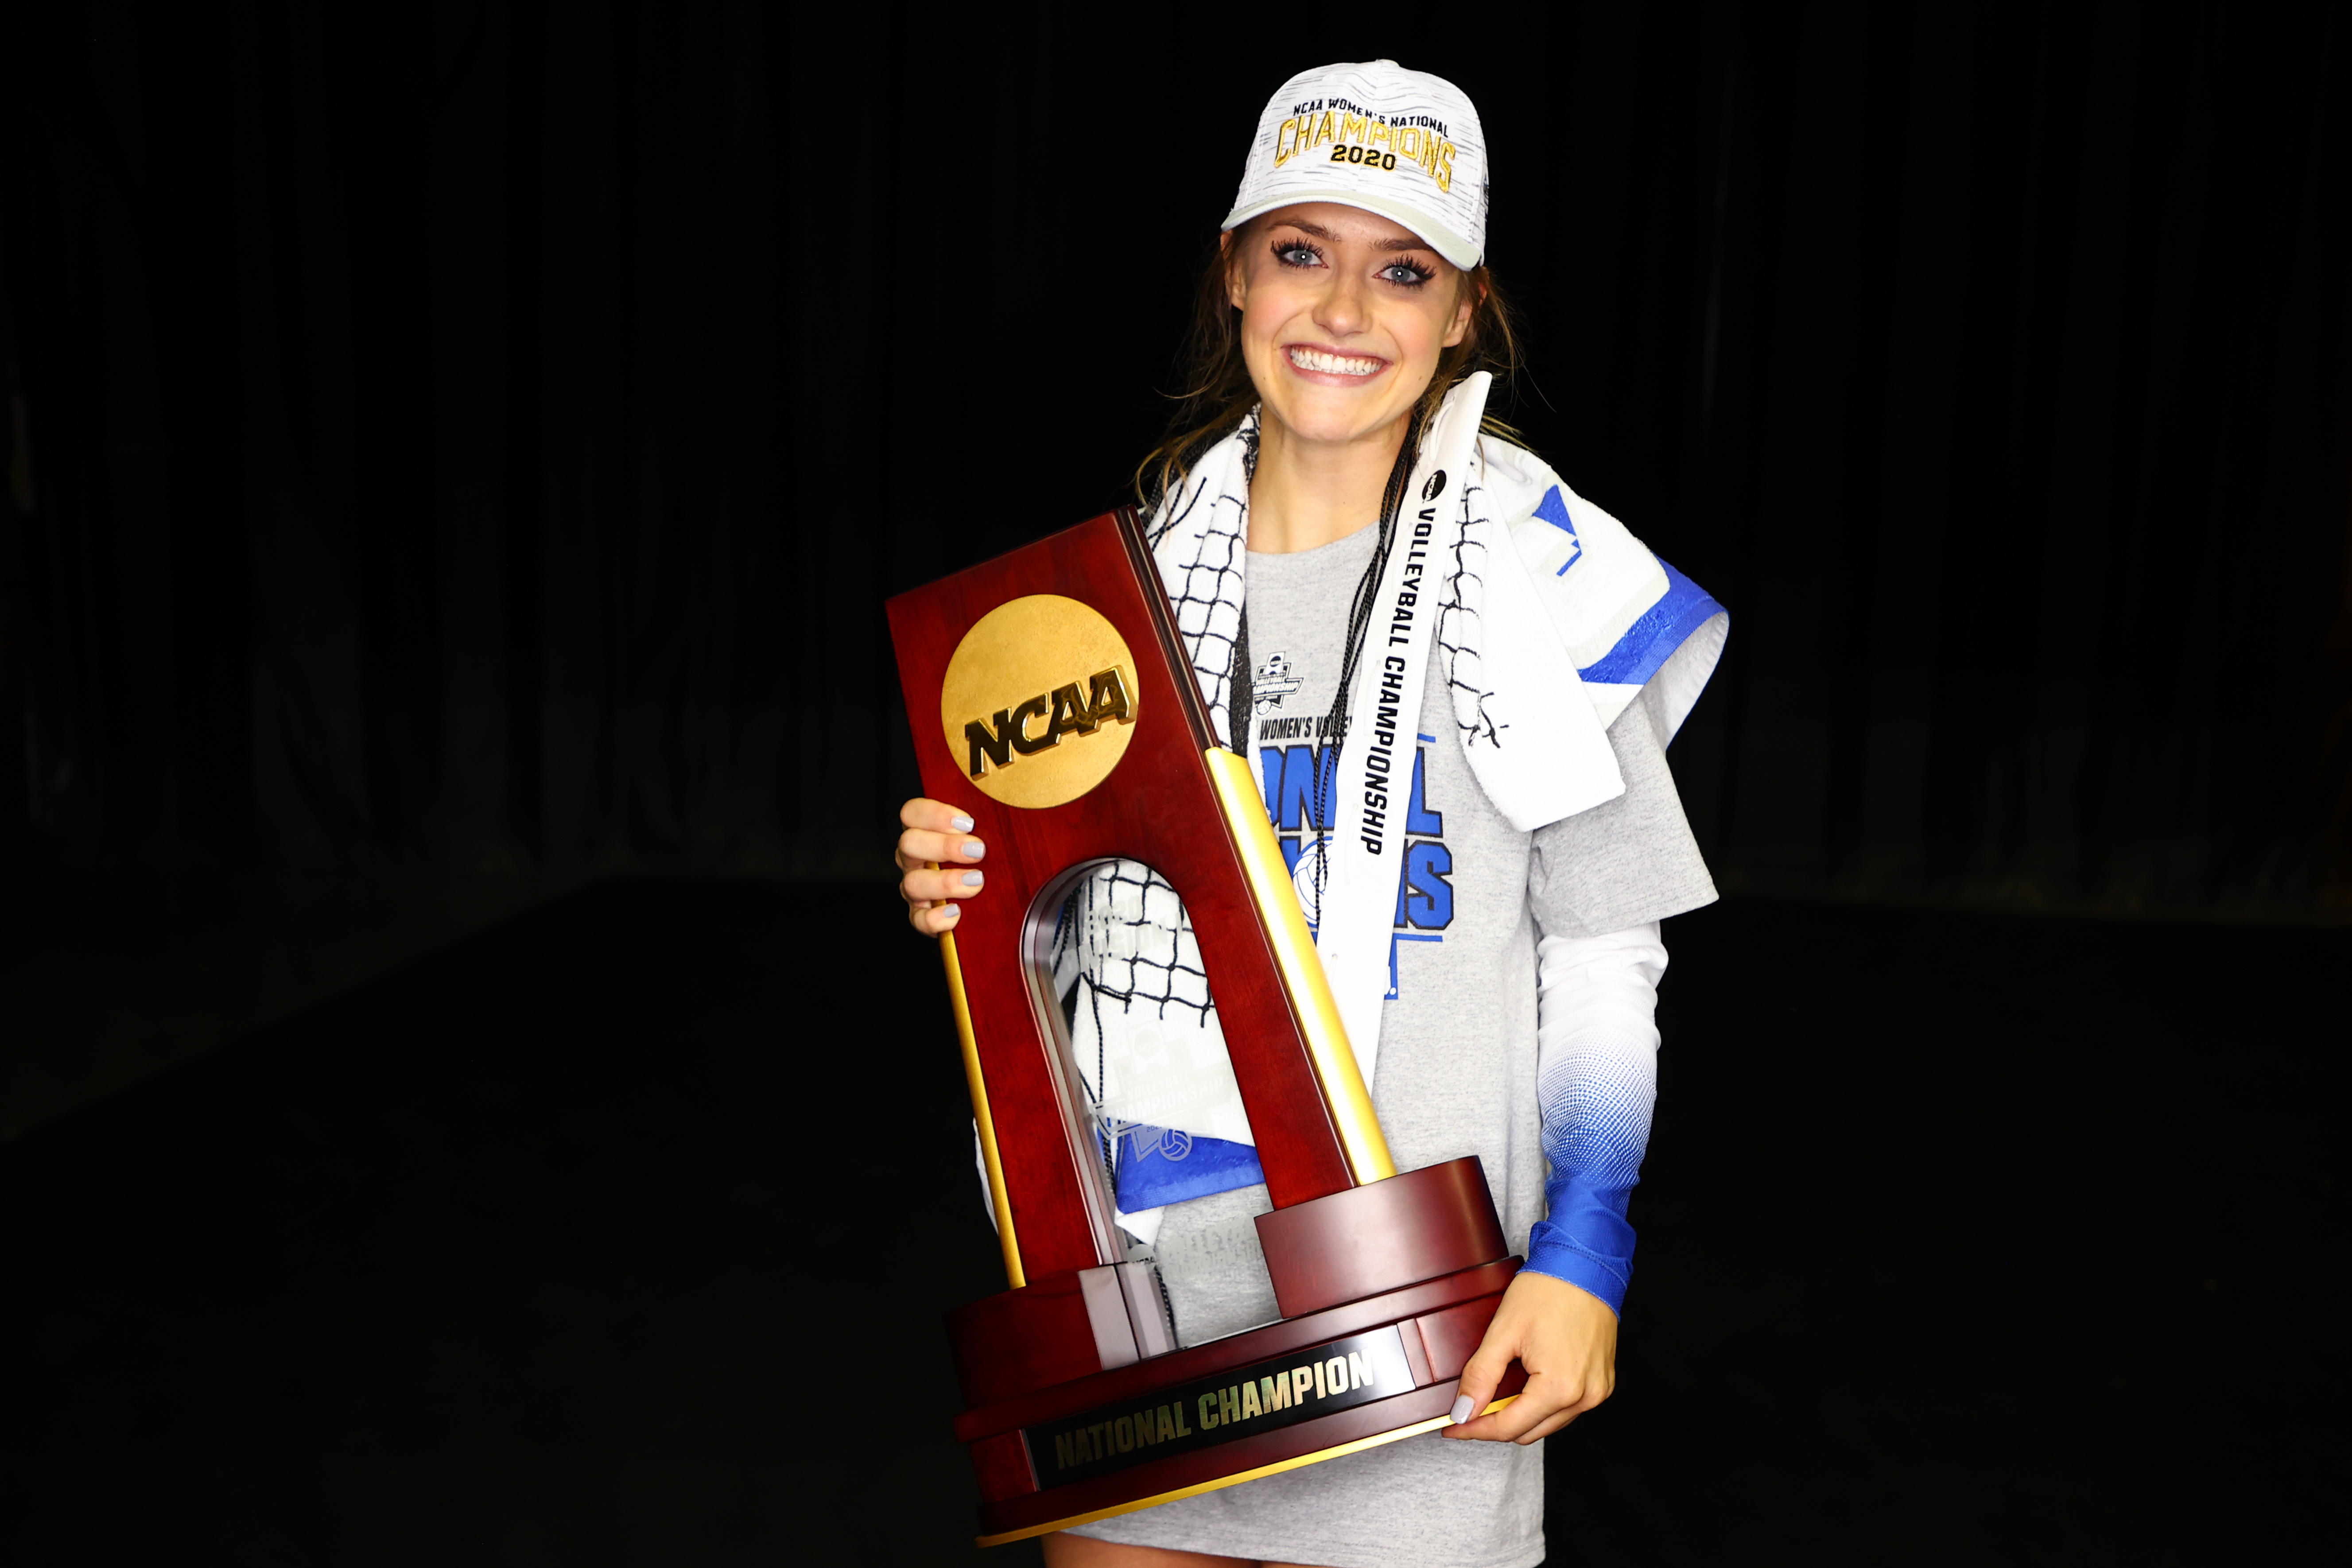 2020 NCAA Division I Women's Volleyball Championship